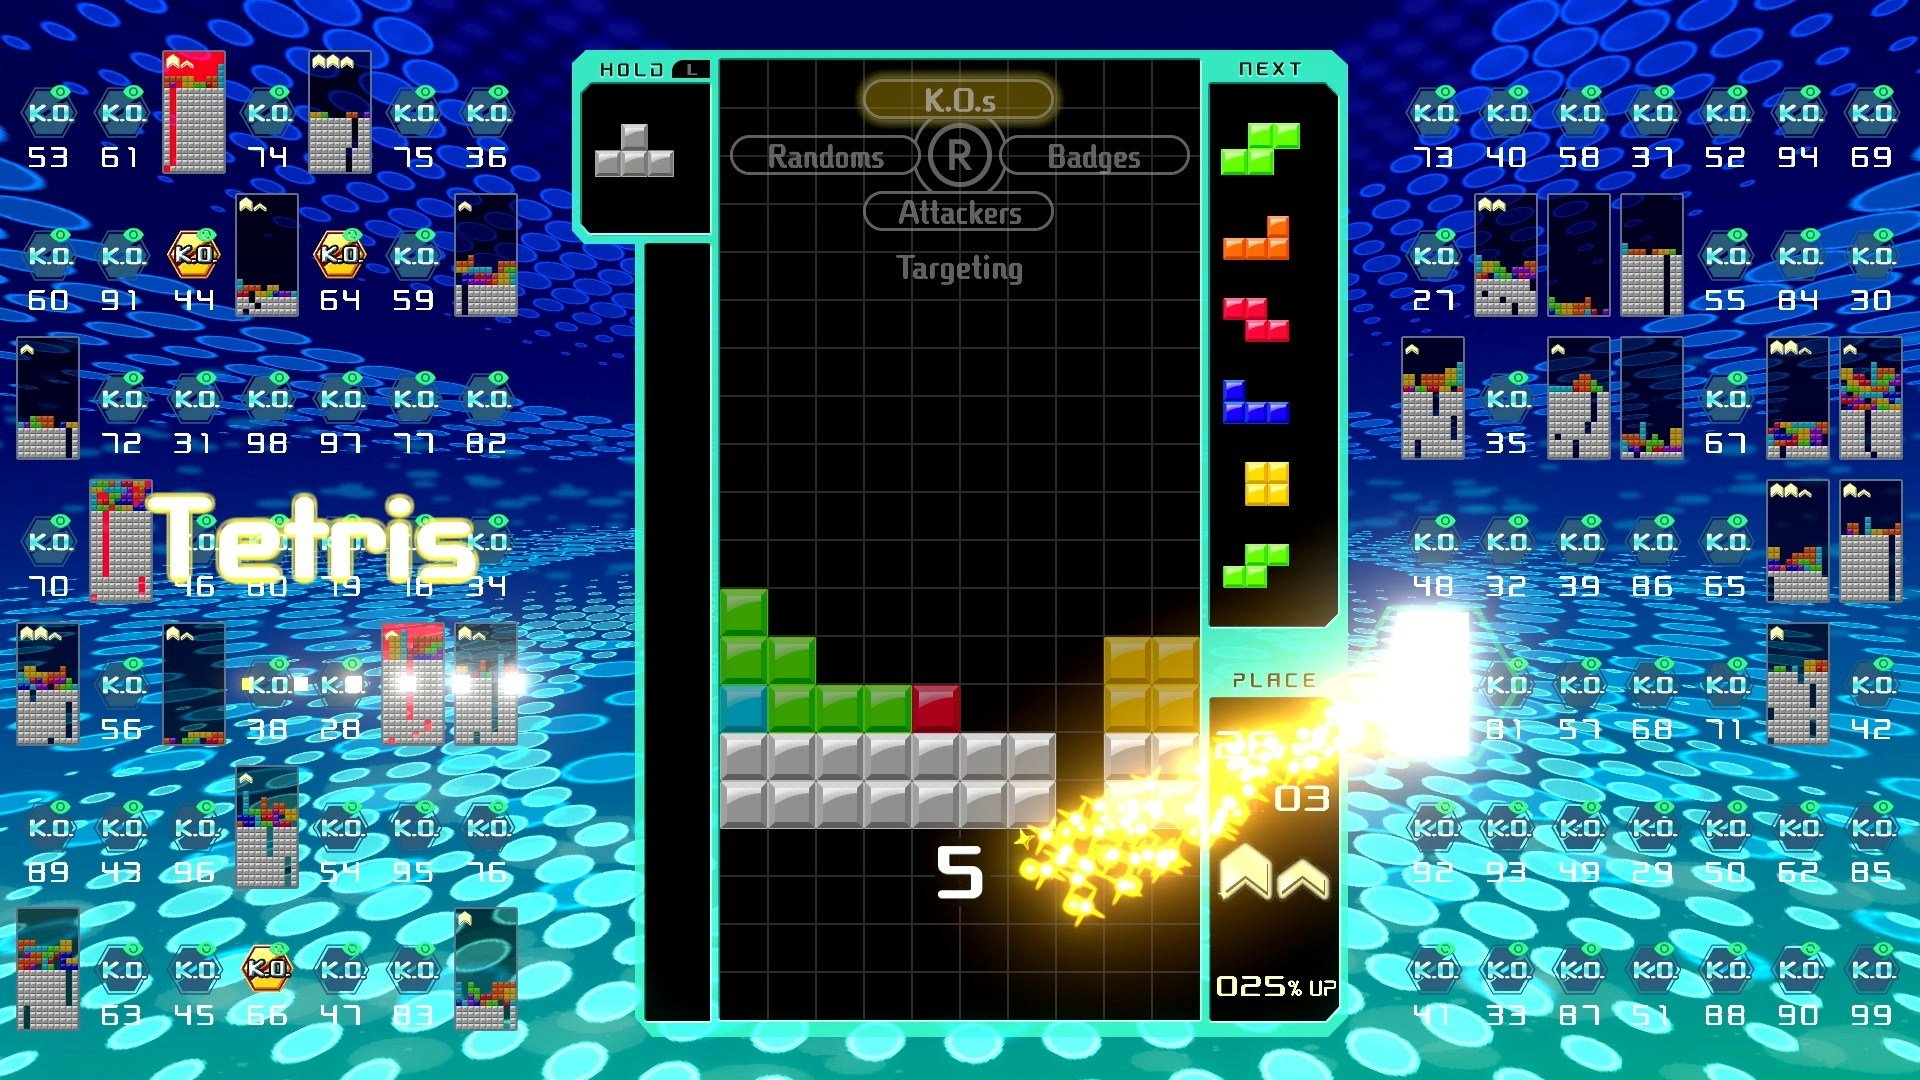 Tetris 99 works similarly to other Tetris games in that the goal is to build and clear lines in order to earn points.